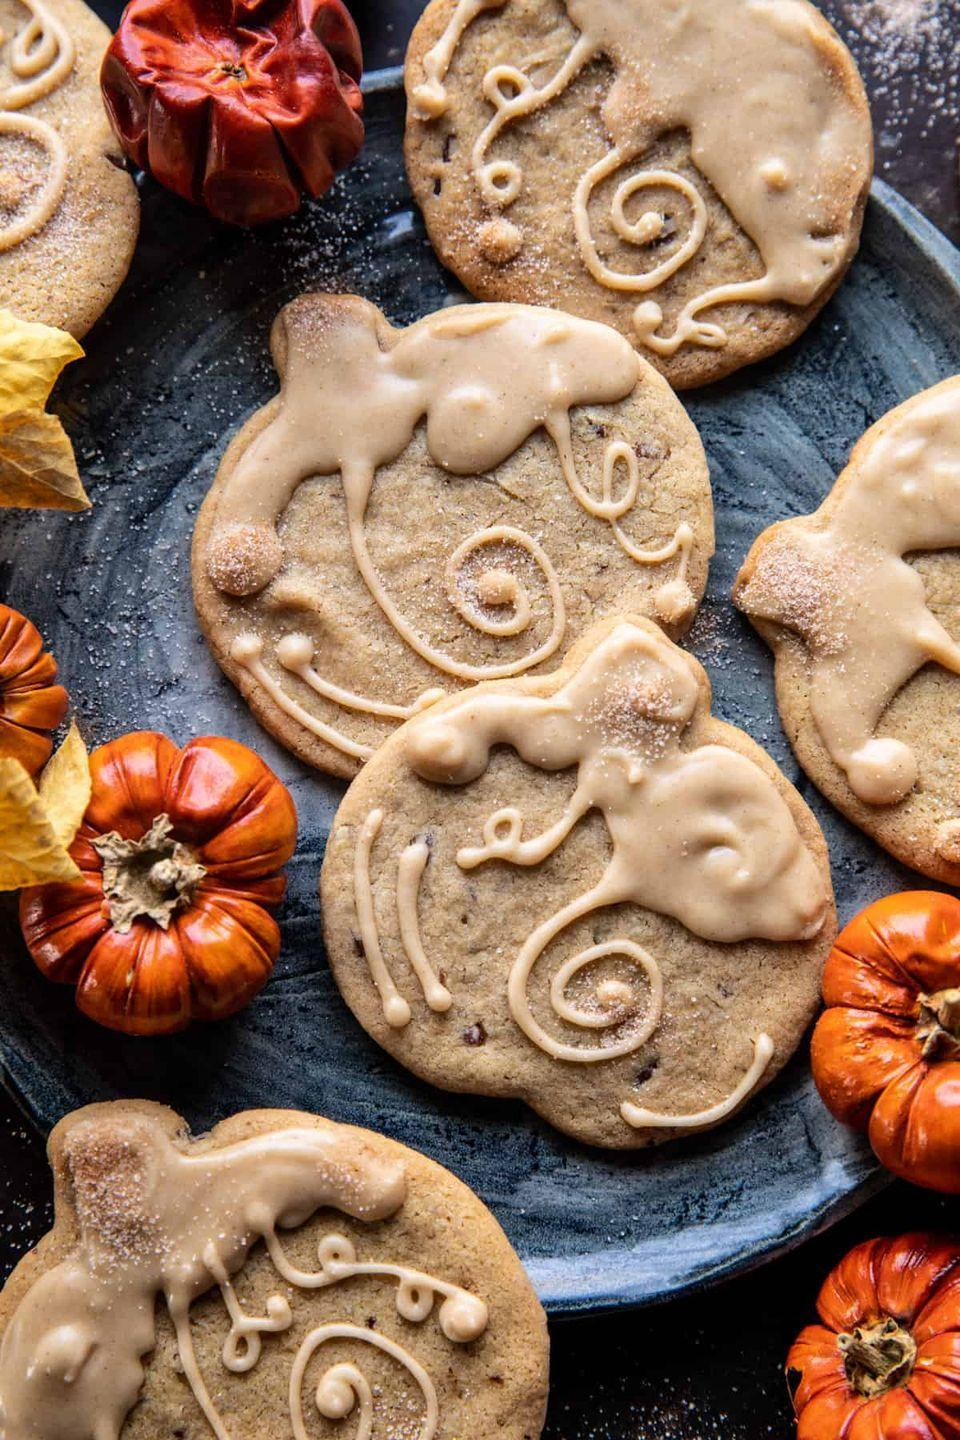 """<p>Whether you prefer cut-out cookies or slice-and-bake, you're in luck: Both versions are offered within this one recipe. After Halloween is over, simply forego the pumpkin shape for a seasonal, back-pocket dessert.</p><p><strong>Get the recipe at <a href=""""https://www.halfbakedharvest.com/brown-sugar-maple-cookies/"""" rel=""""nofollow noopener"""" target=""""_blank"""" data-ylk=""""slk:Half Baked Harvest"""" class=""""link rapid-noclick-resp"""">Half Baked Harvest</a>.</strong></p><p><a class=""""link rapid-noclick-resp"""" href=""""https://go.redirectingat.com?id=74968X1596630&url=https%3A%2F%2Fwww.walmart.com%2Fsearch%2F%3Fquery%3Dpumpkin%2Bcookie%2Bcutters&sref=https%3A%2F%2Fwww.thepioneerwoman.com%2Ffood-cooking%2Fmeals-menus%2Fg32110899%2Fbest-halloween-desserts%2F"""" rel=""""nofollow noopener"""" target=""""_blank"""" data-ylk=""""slk:SHOP PUMPKIN COOKIE CUTTERS"""">SHOP PUMPKIN COOKIE CUTTERS</a></p>"""